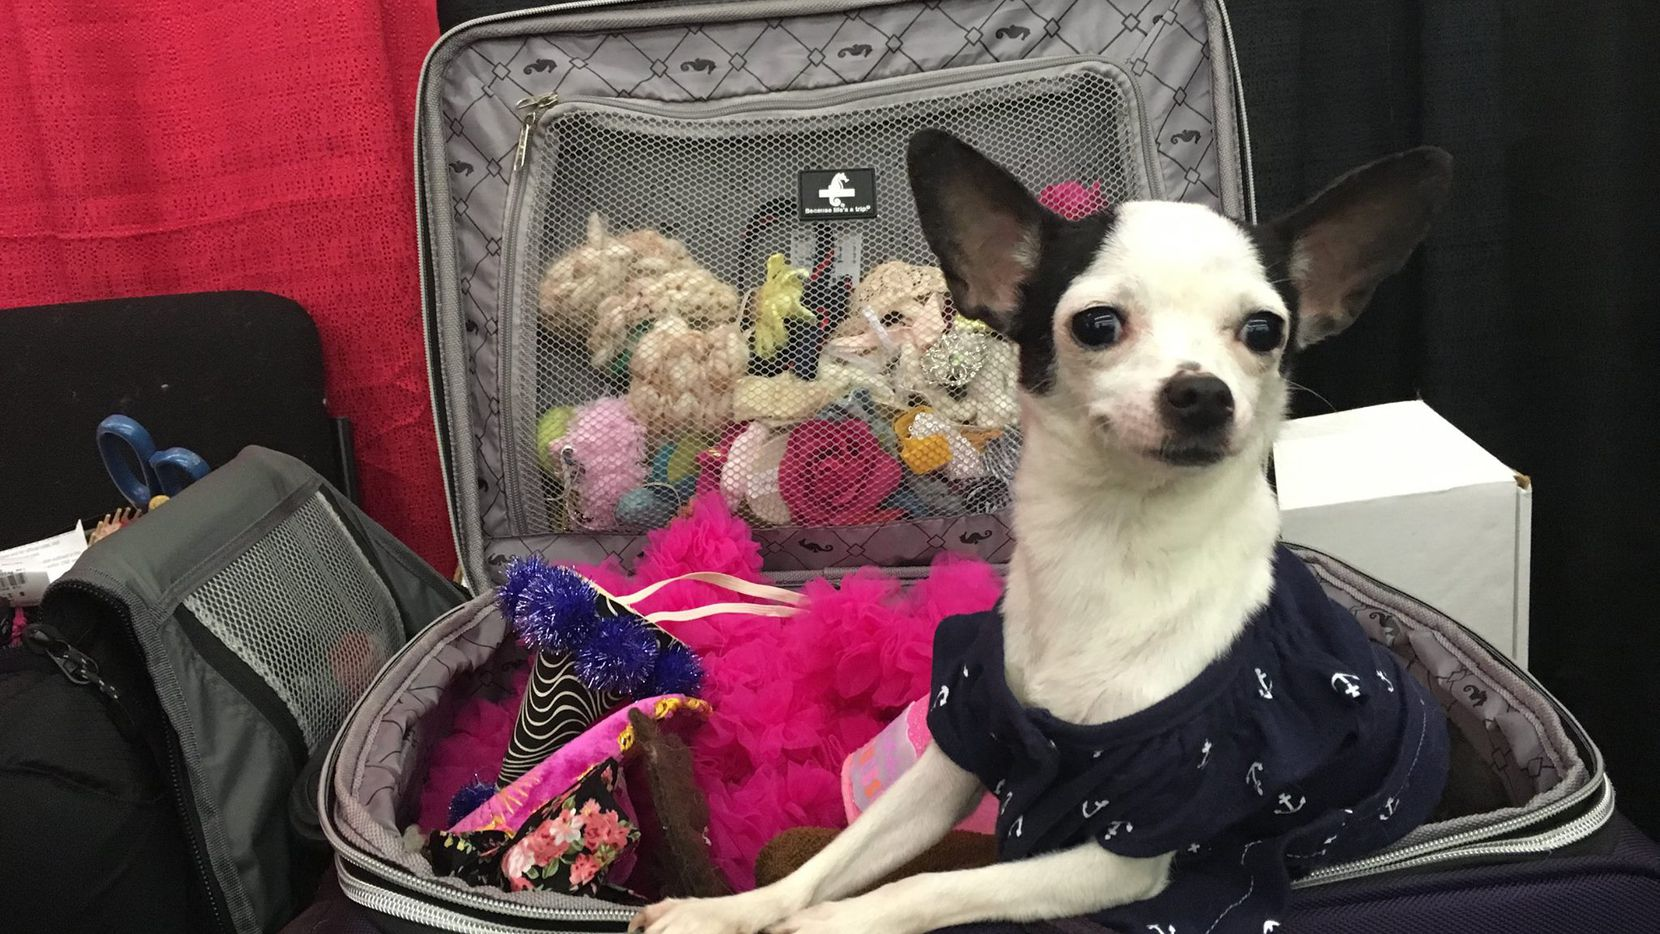 A vendor's dog took a break in a suitcase full of costumes at a photography booth during a previous Dallas Pet Expo.